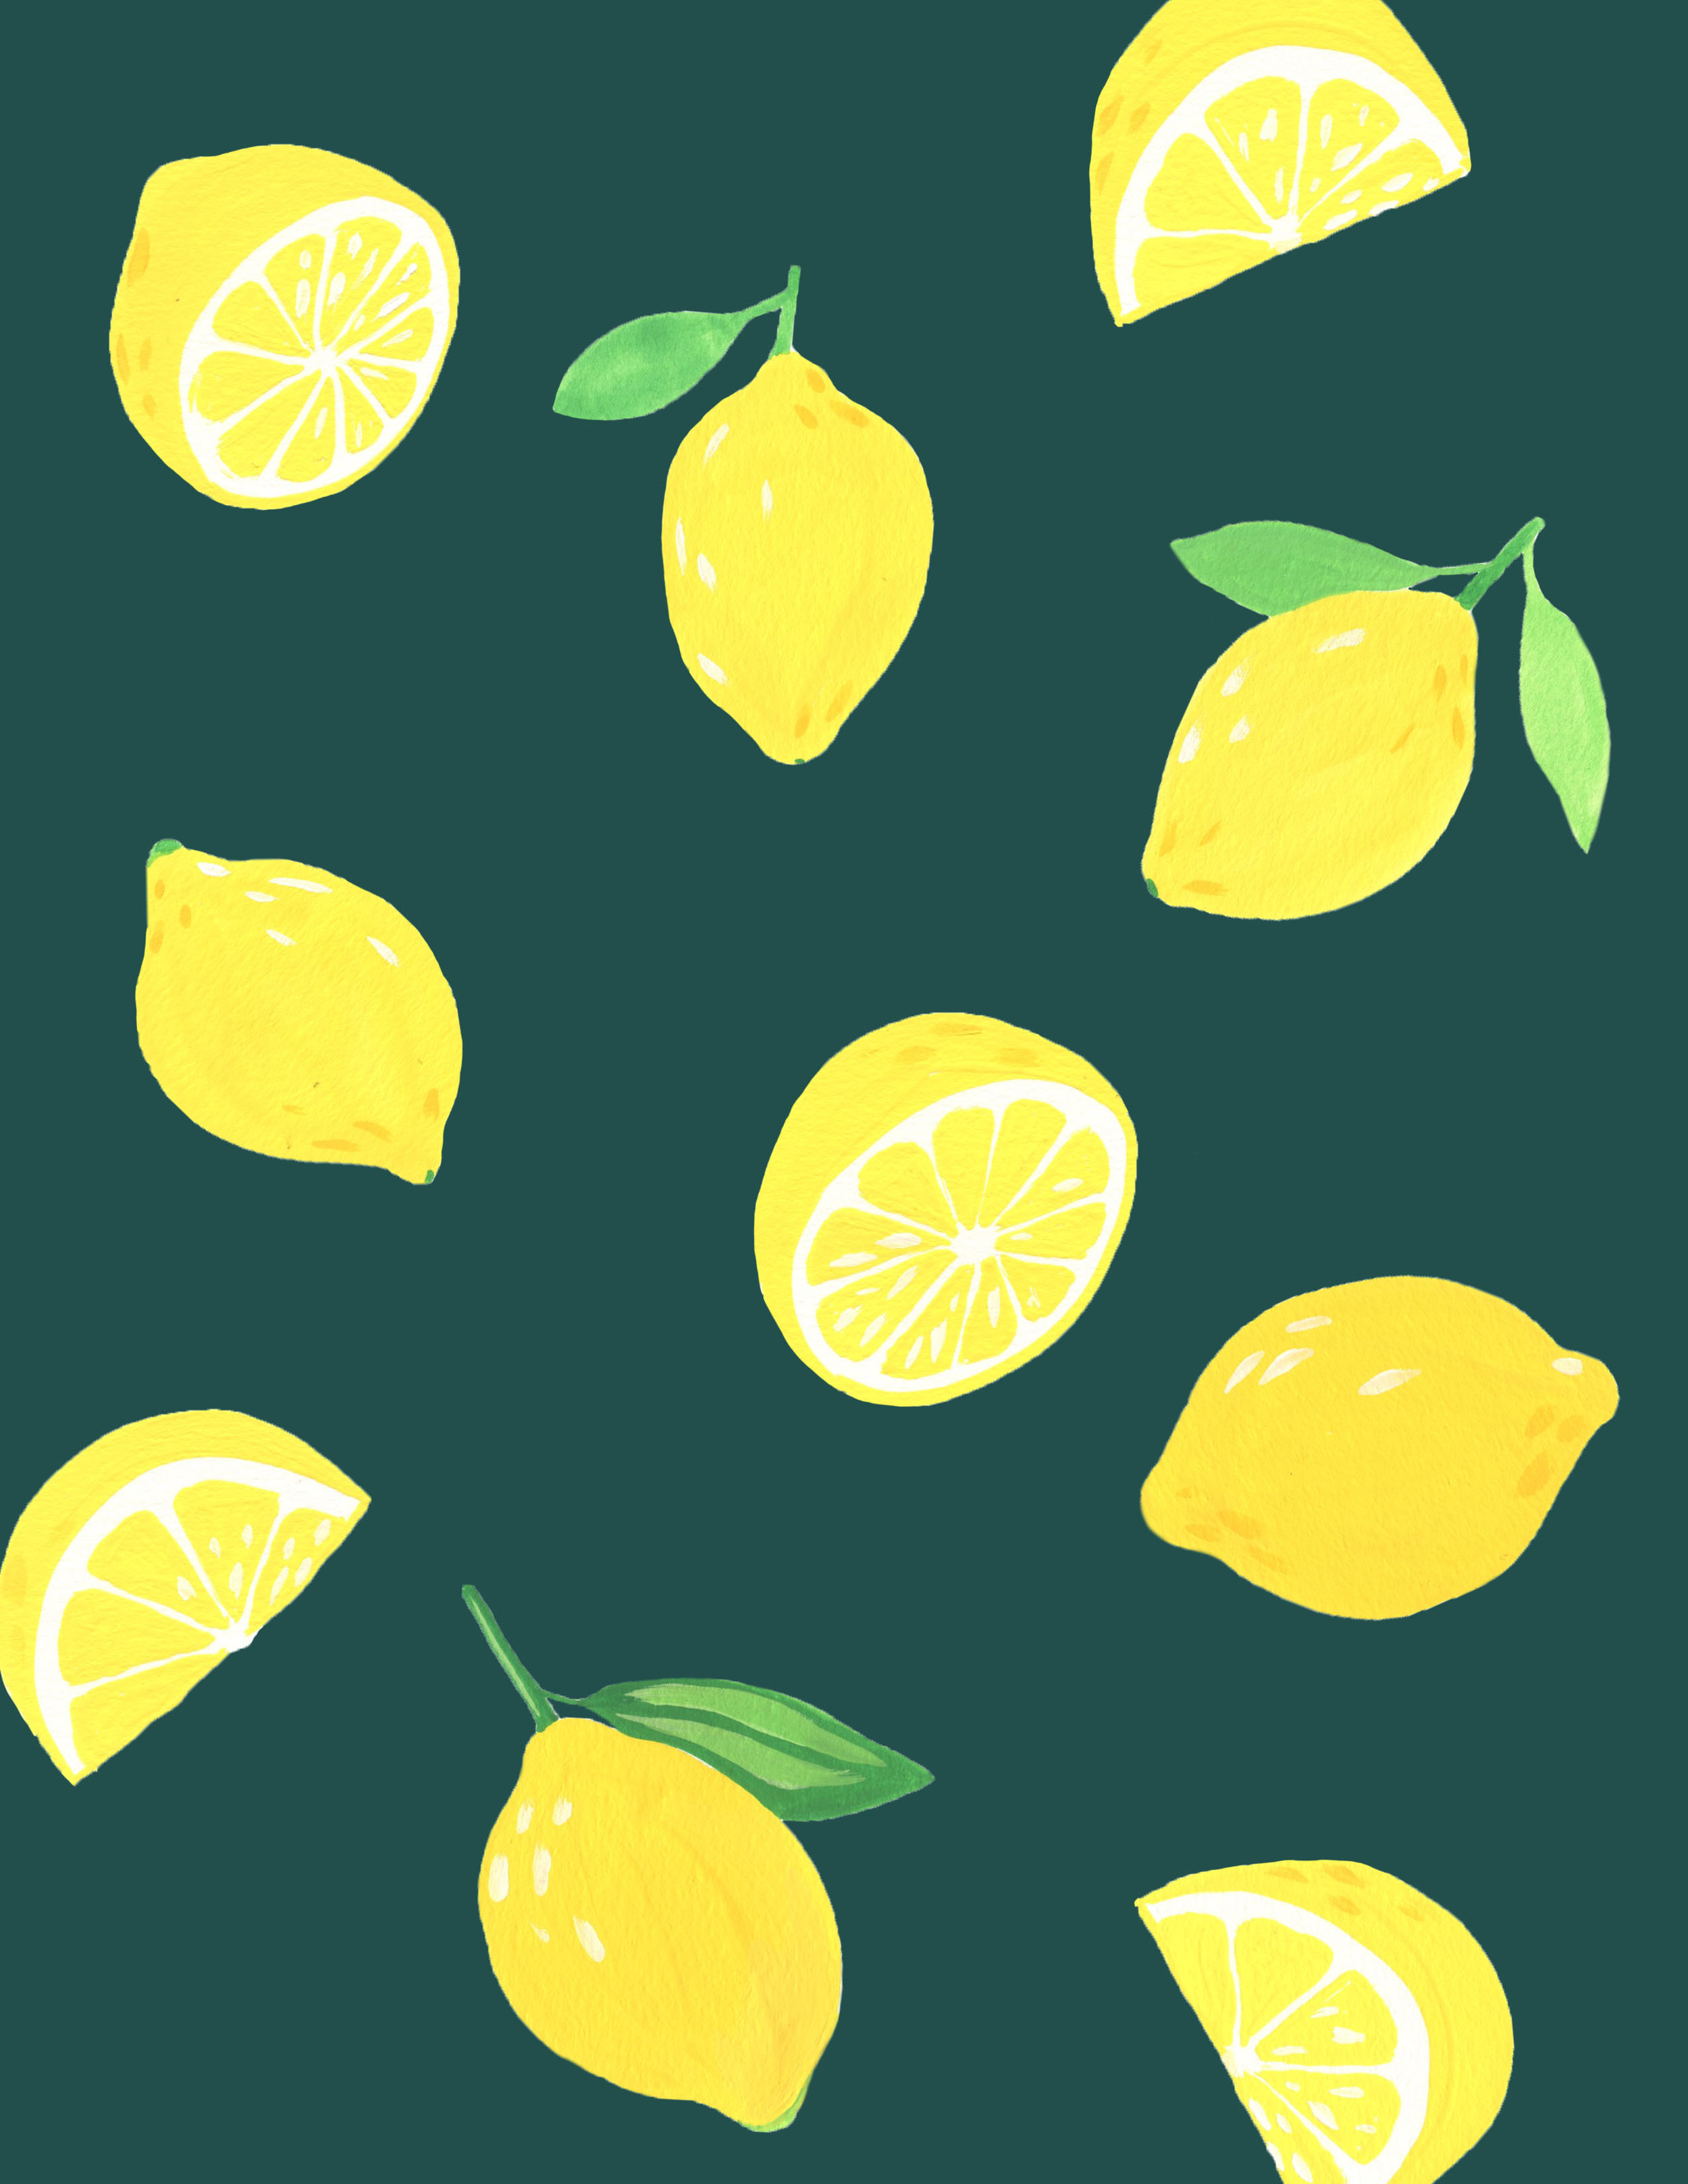 Cellrare-lemons.jpg